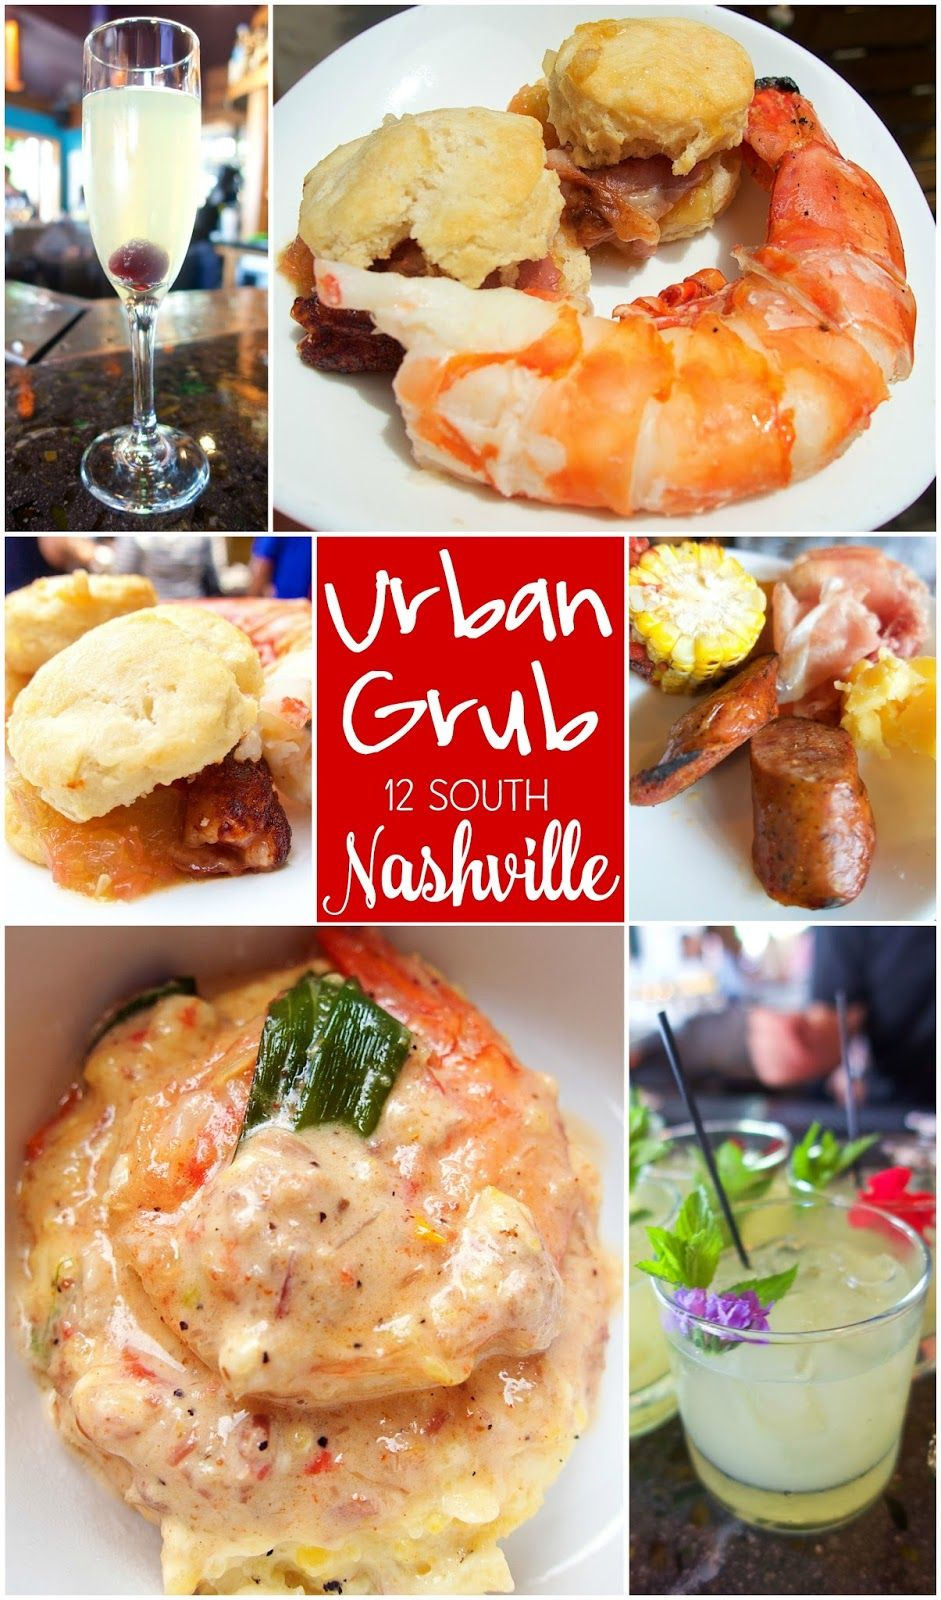 Urban Grub 12 South Nashville Homemade Charcuterie Fresh Fish And Dry Aged Steaks They Have Something For Everyone